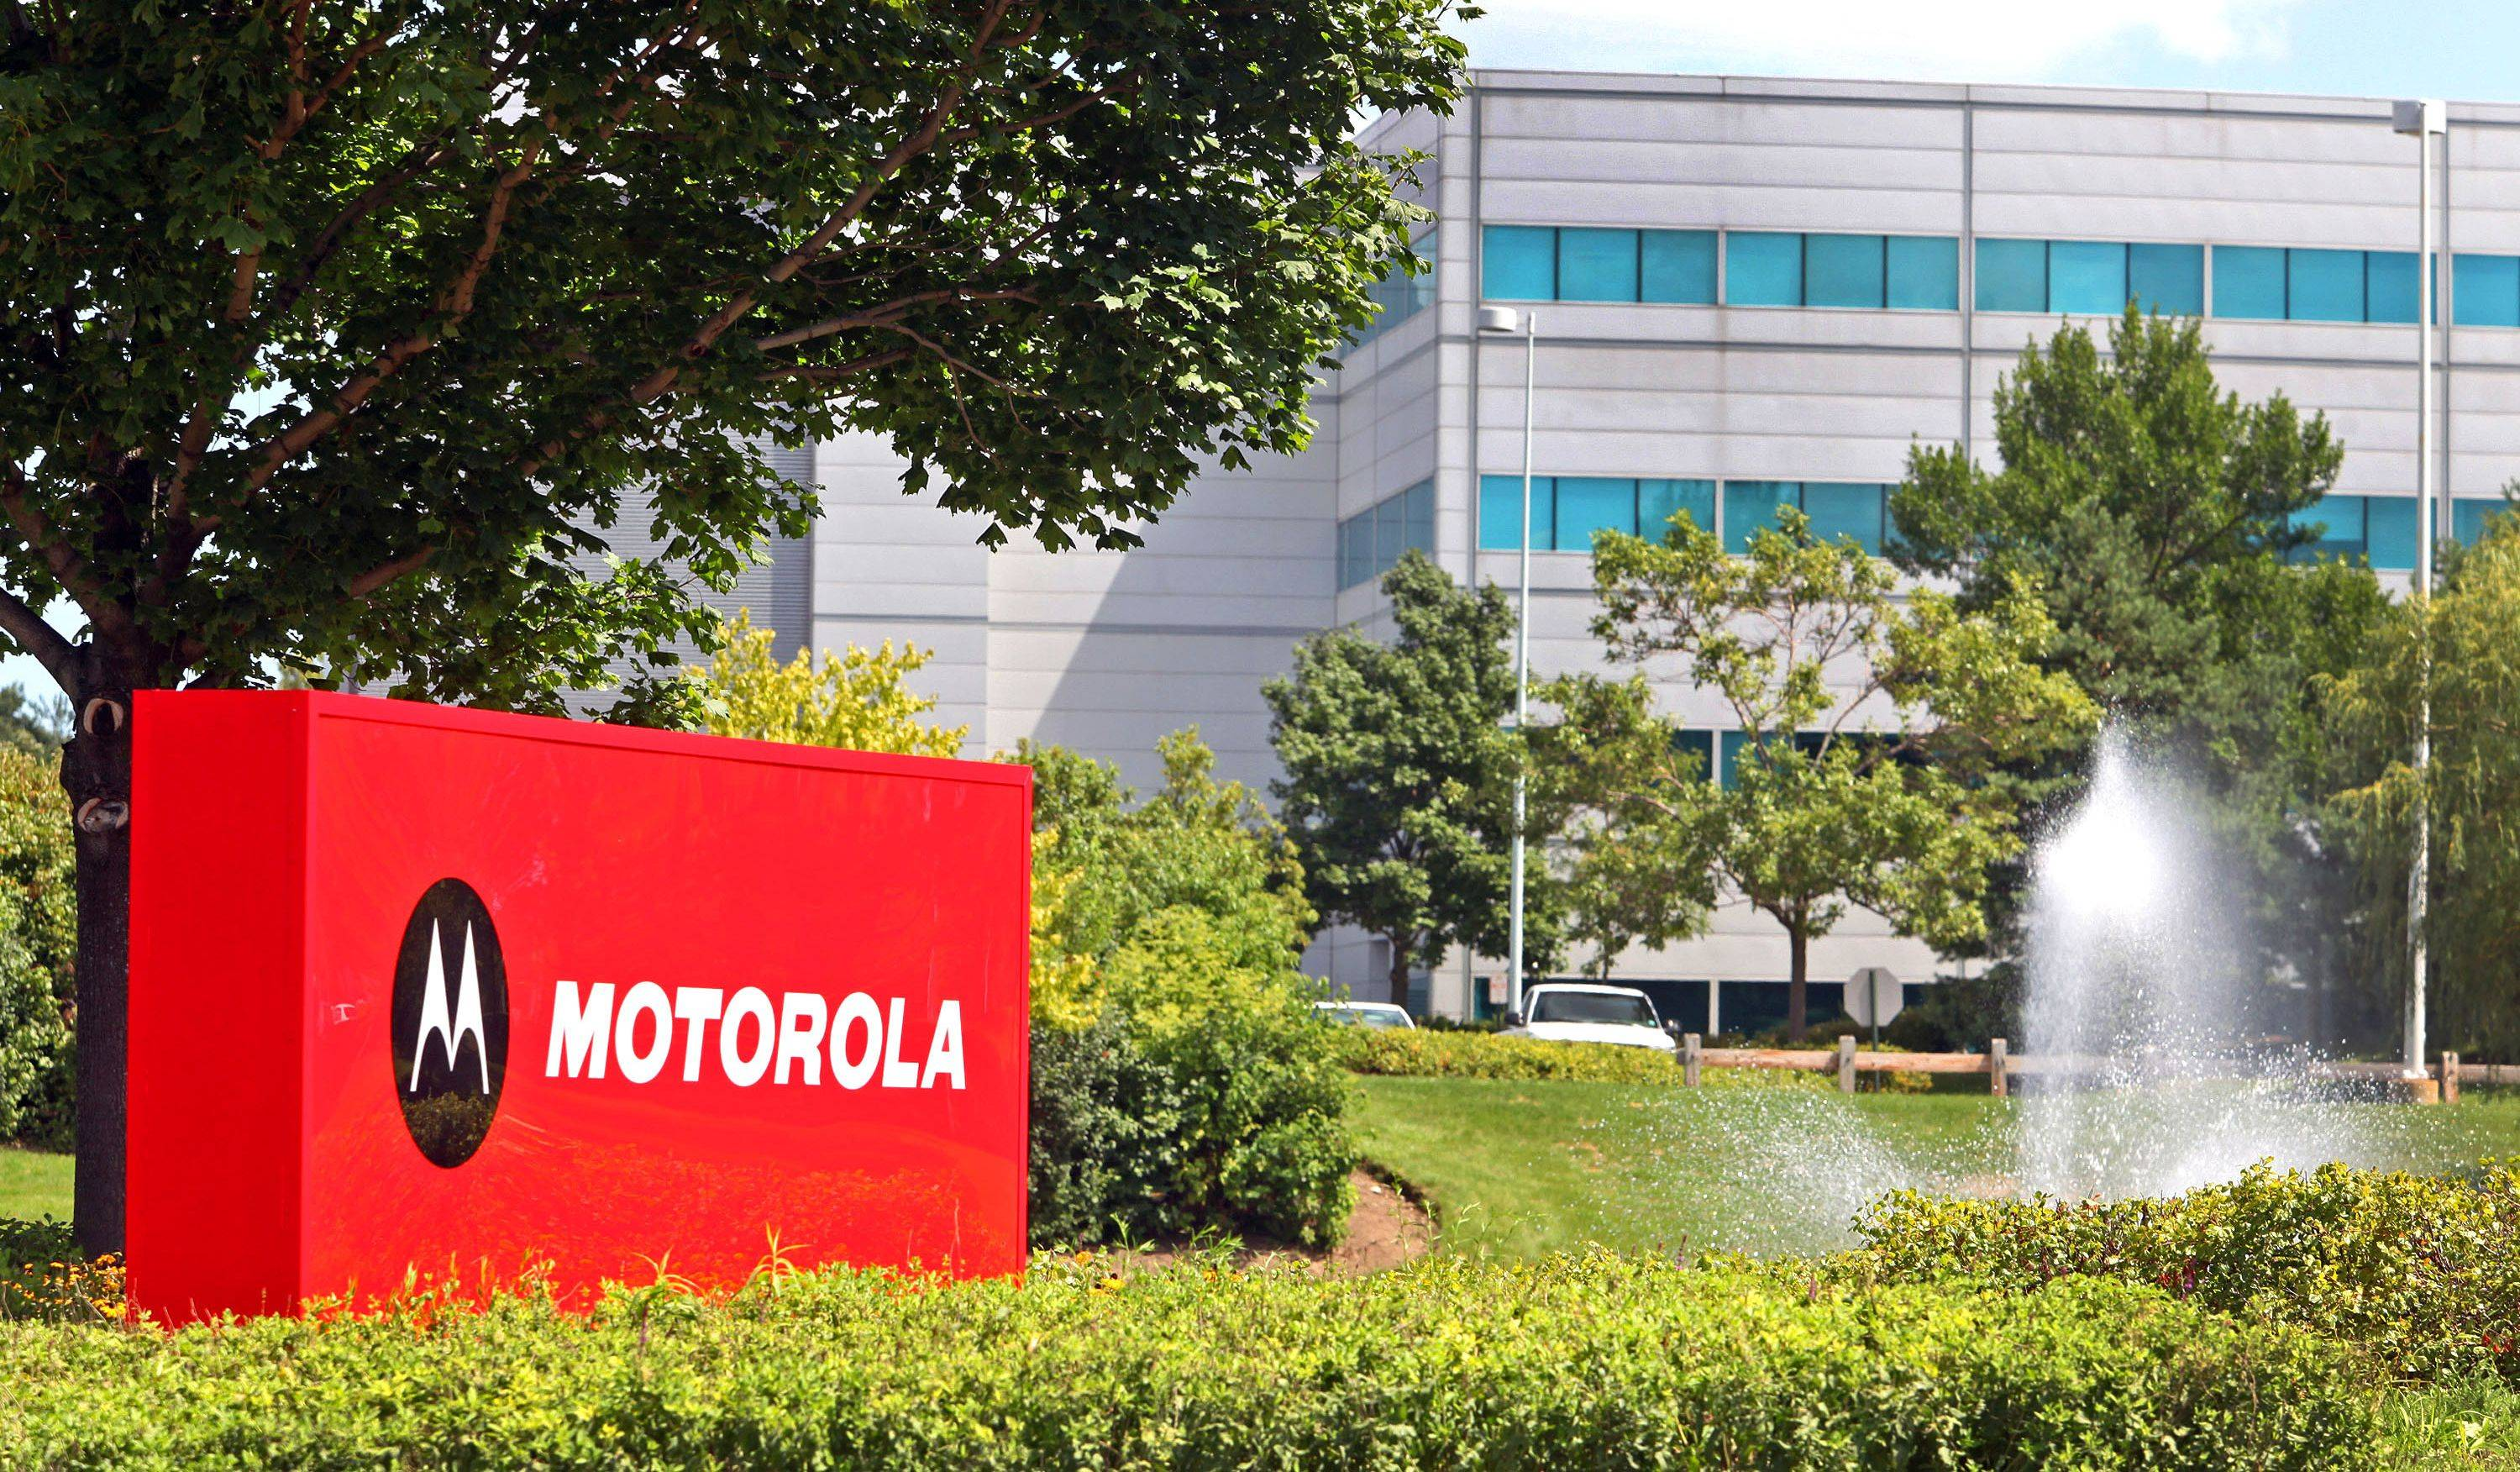 Once Google closes on the purchase of Motorola Mobility Holdings based in Libertyville, could it turn around and resell it or part of it and keep what it wants? Some analysts think so.